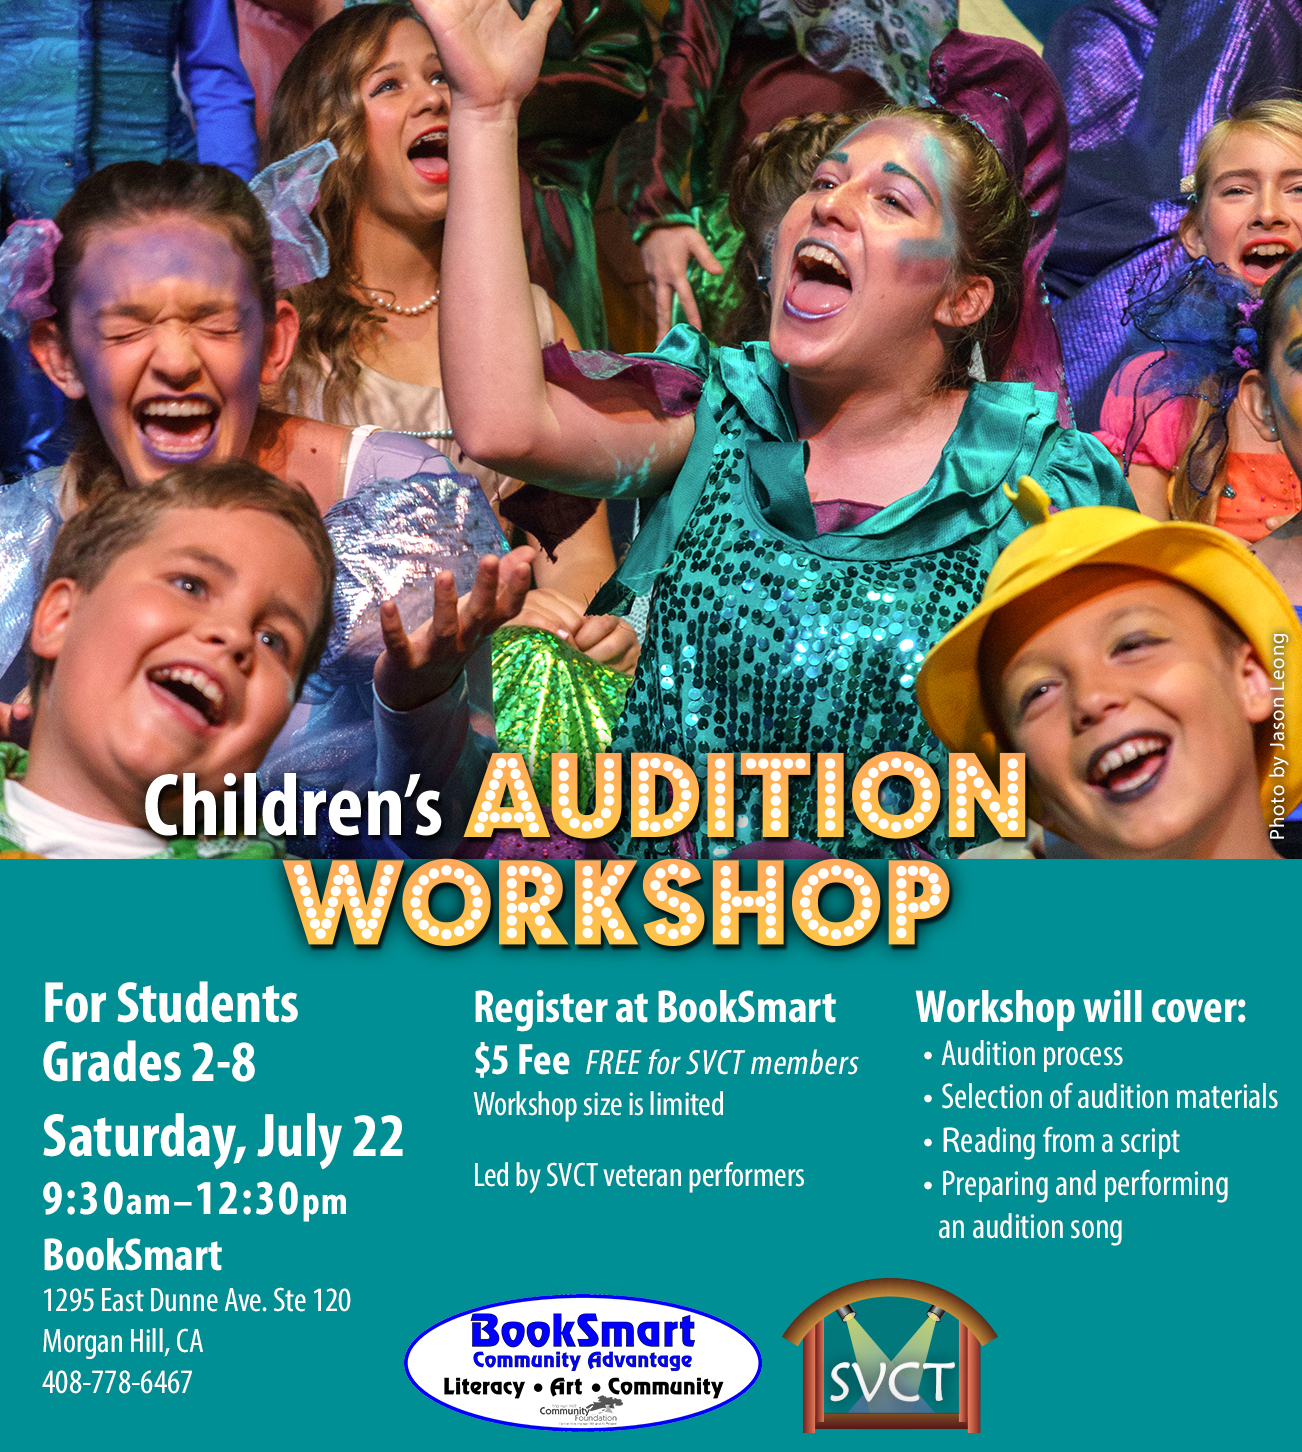 svct_audition_workshop_children_small